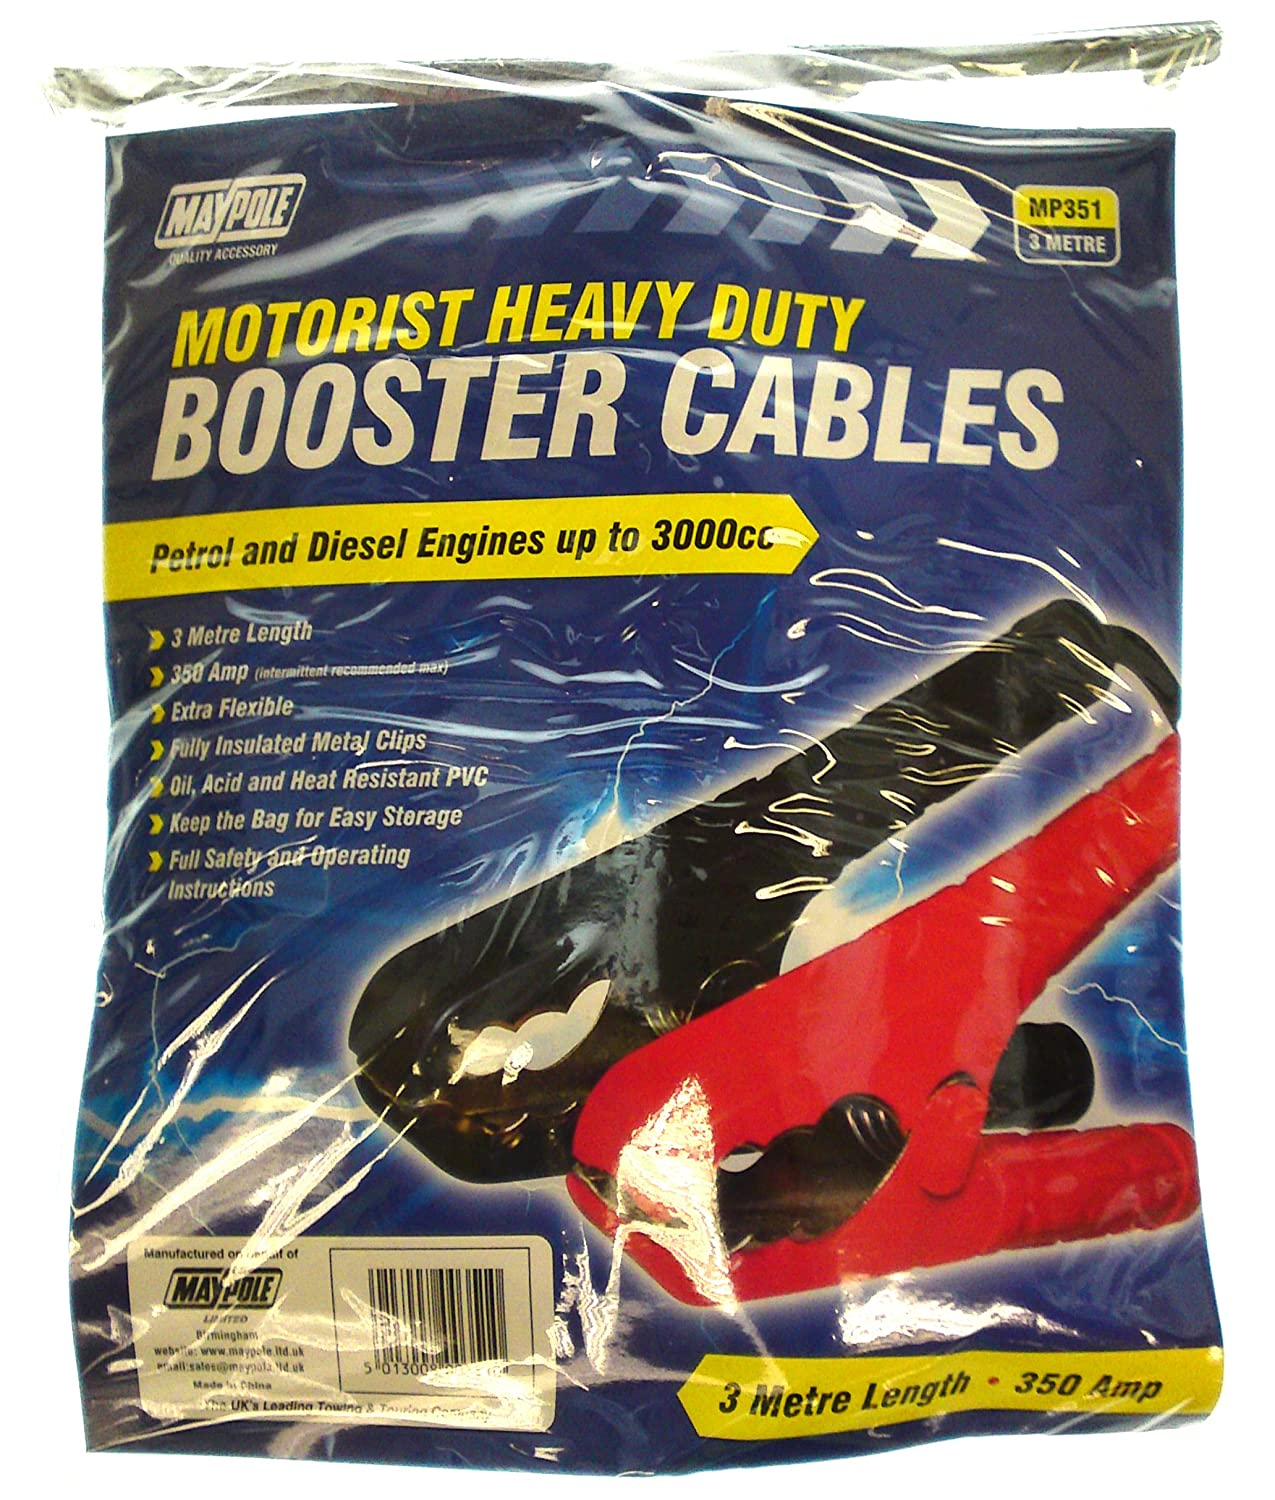 Maypole MP351 10mm x 3m Heavy Duty Booster Cables Maypole Limited